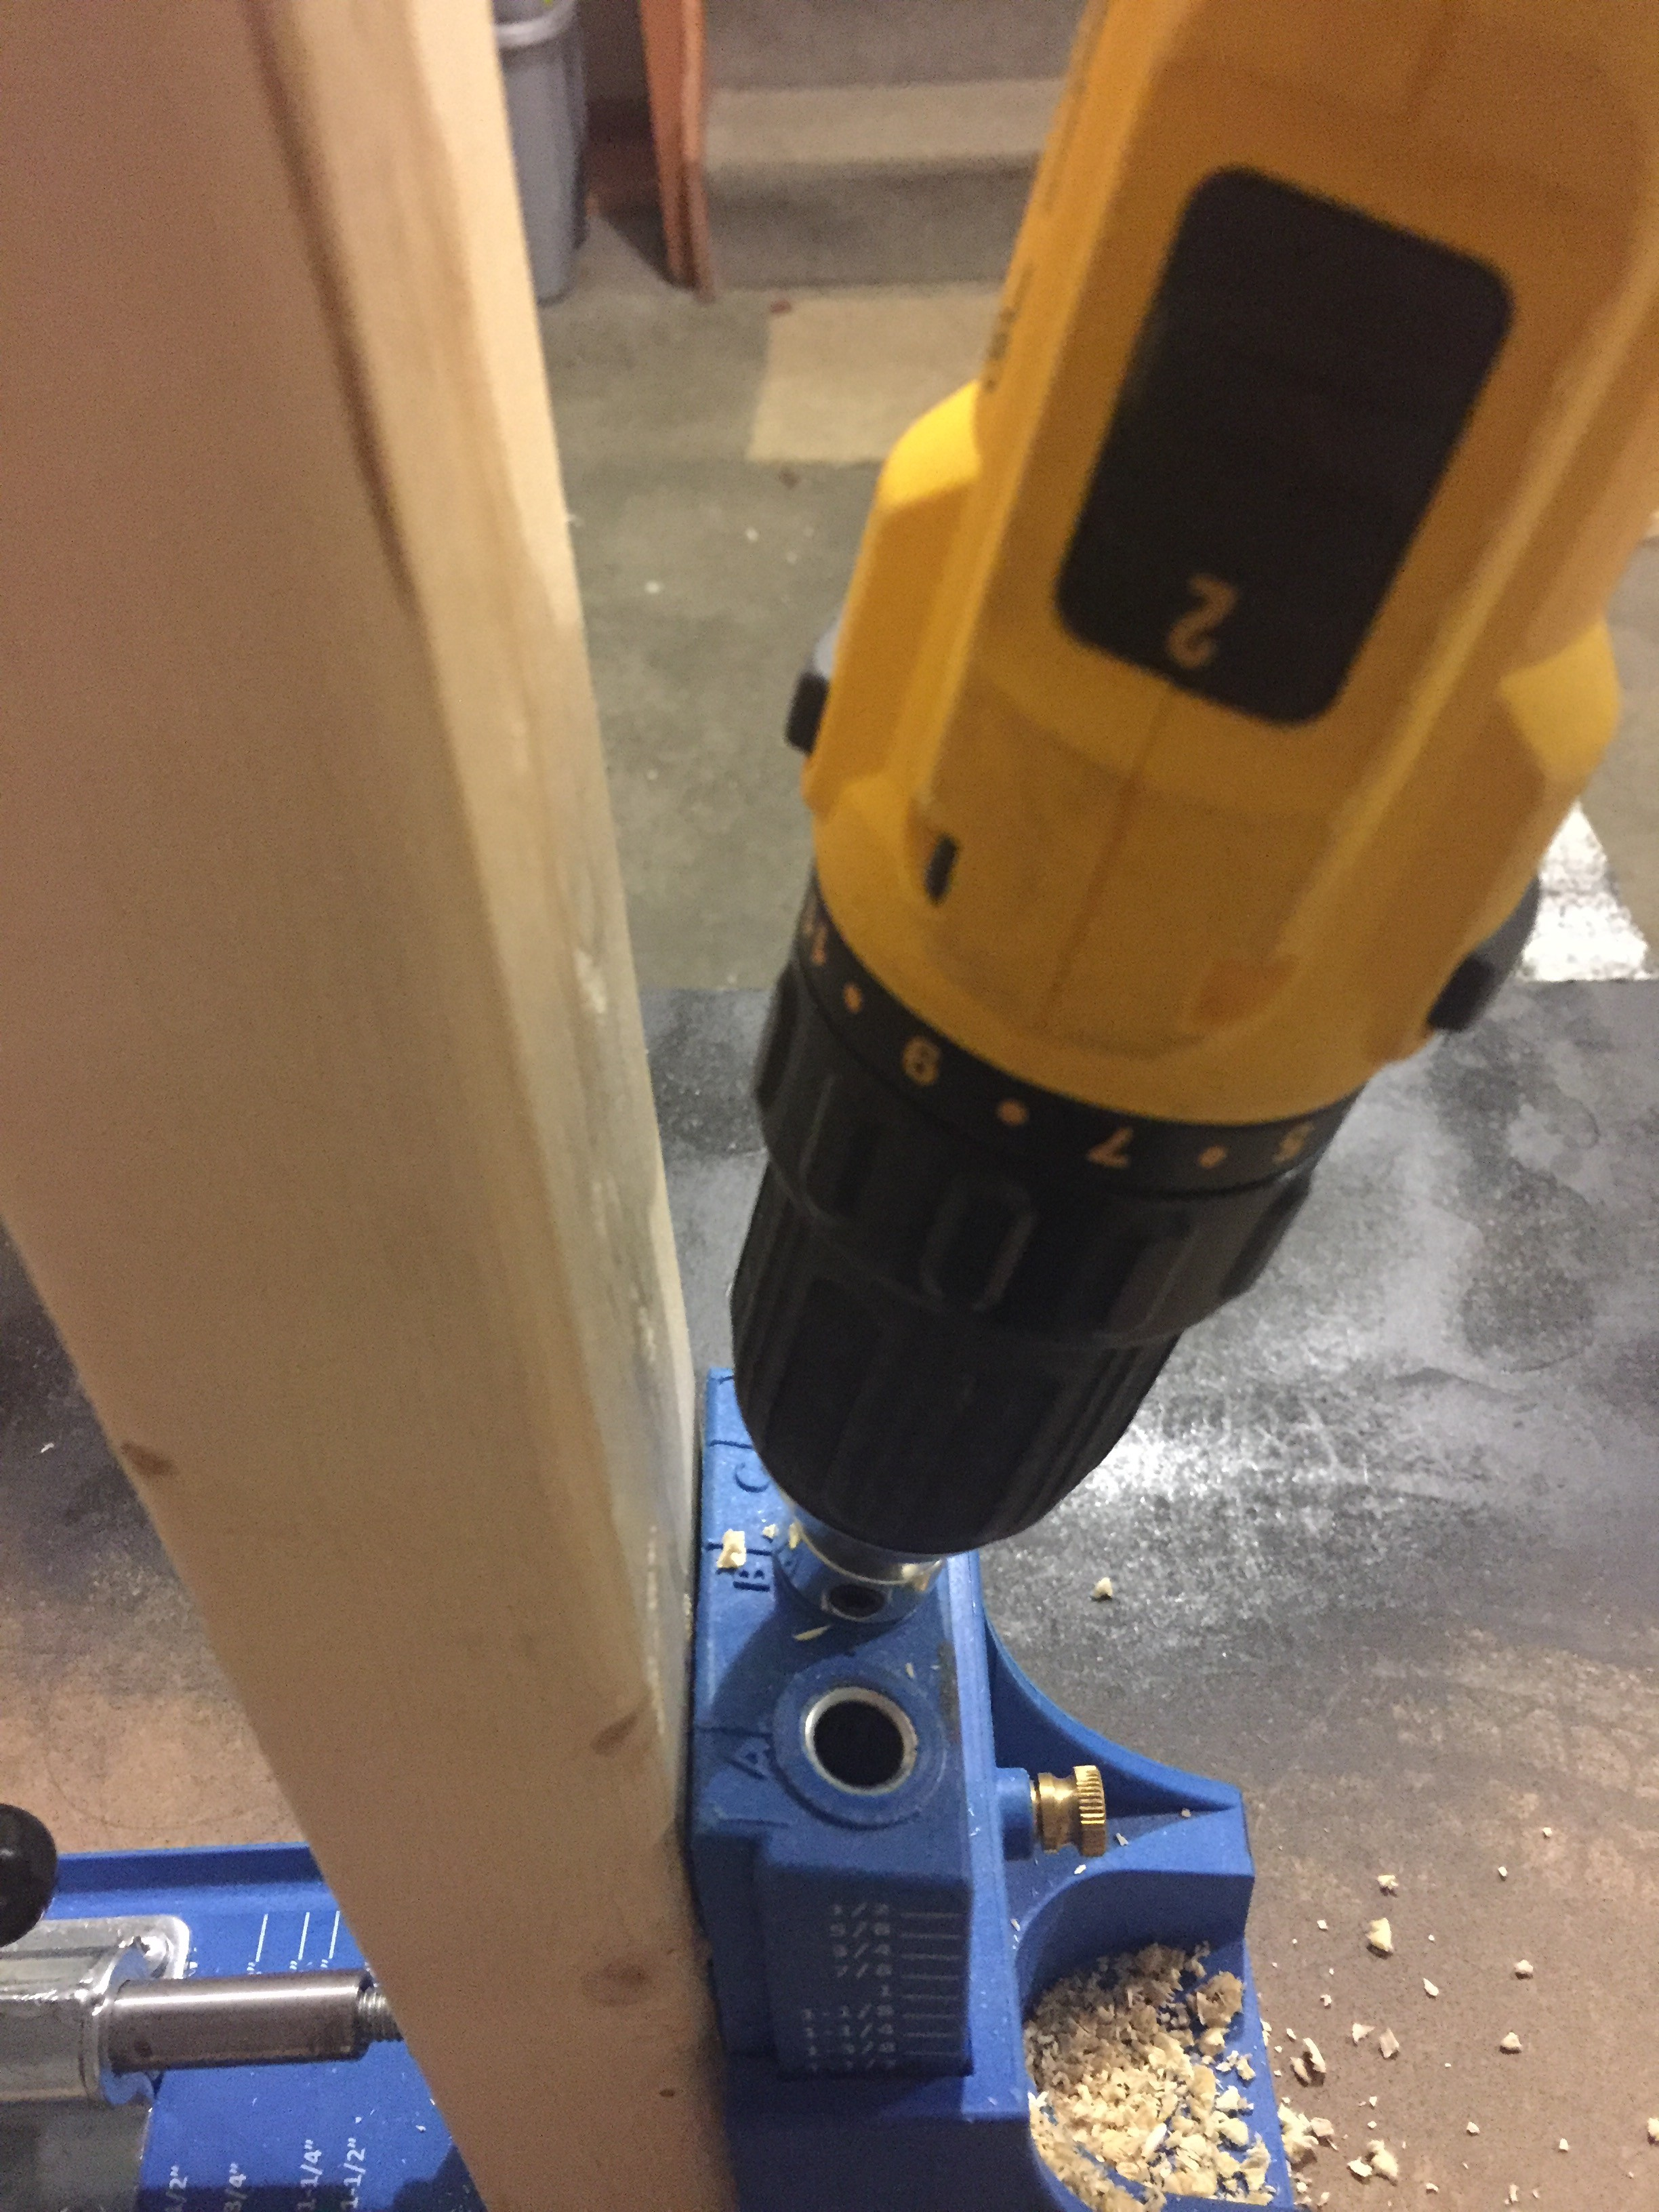 drilling into a kreg jig into a 2x4